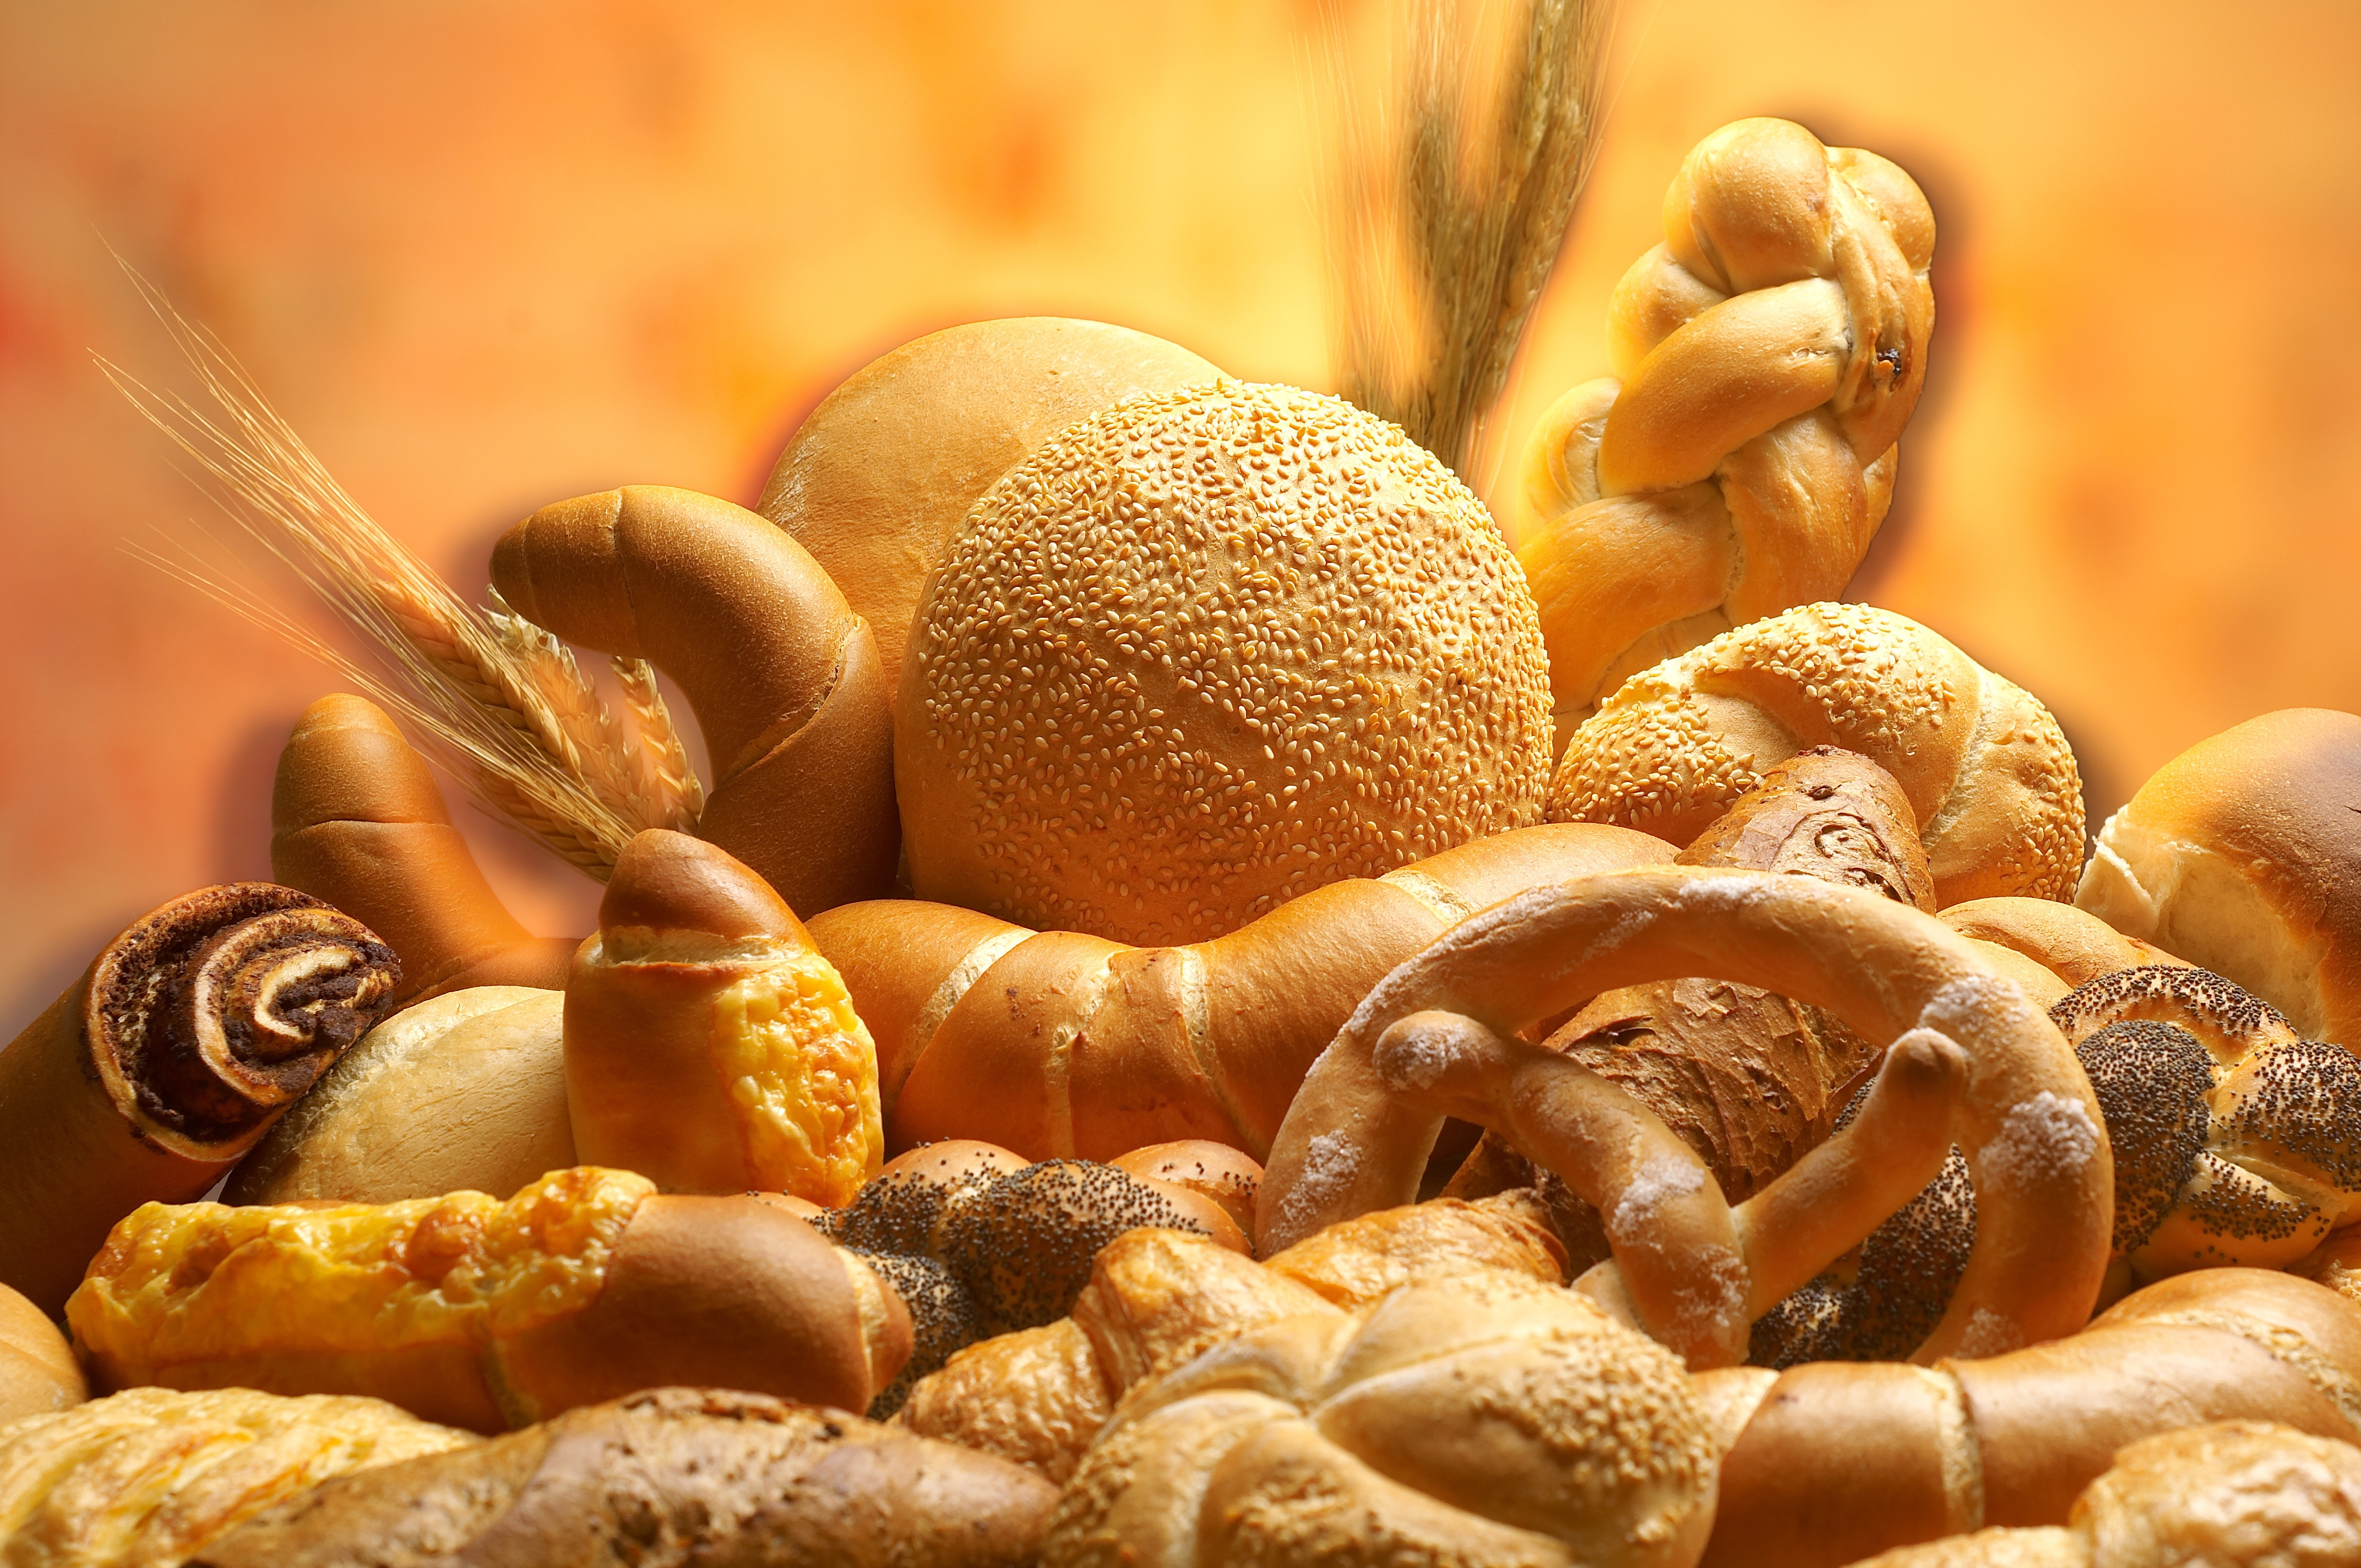 Bread Hd Wallpapers HD Wallpapers Download Free Images Wallpaper [1000image.com]